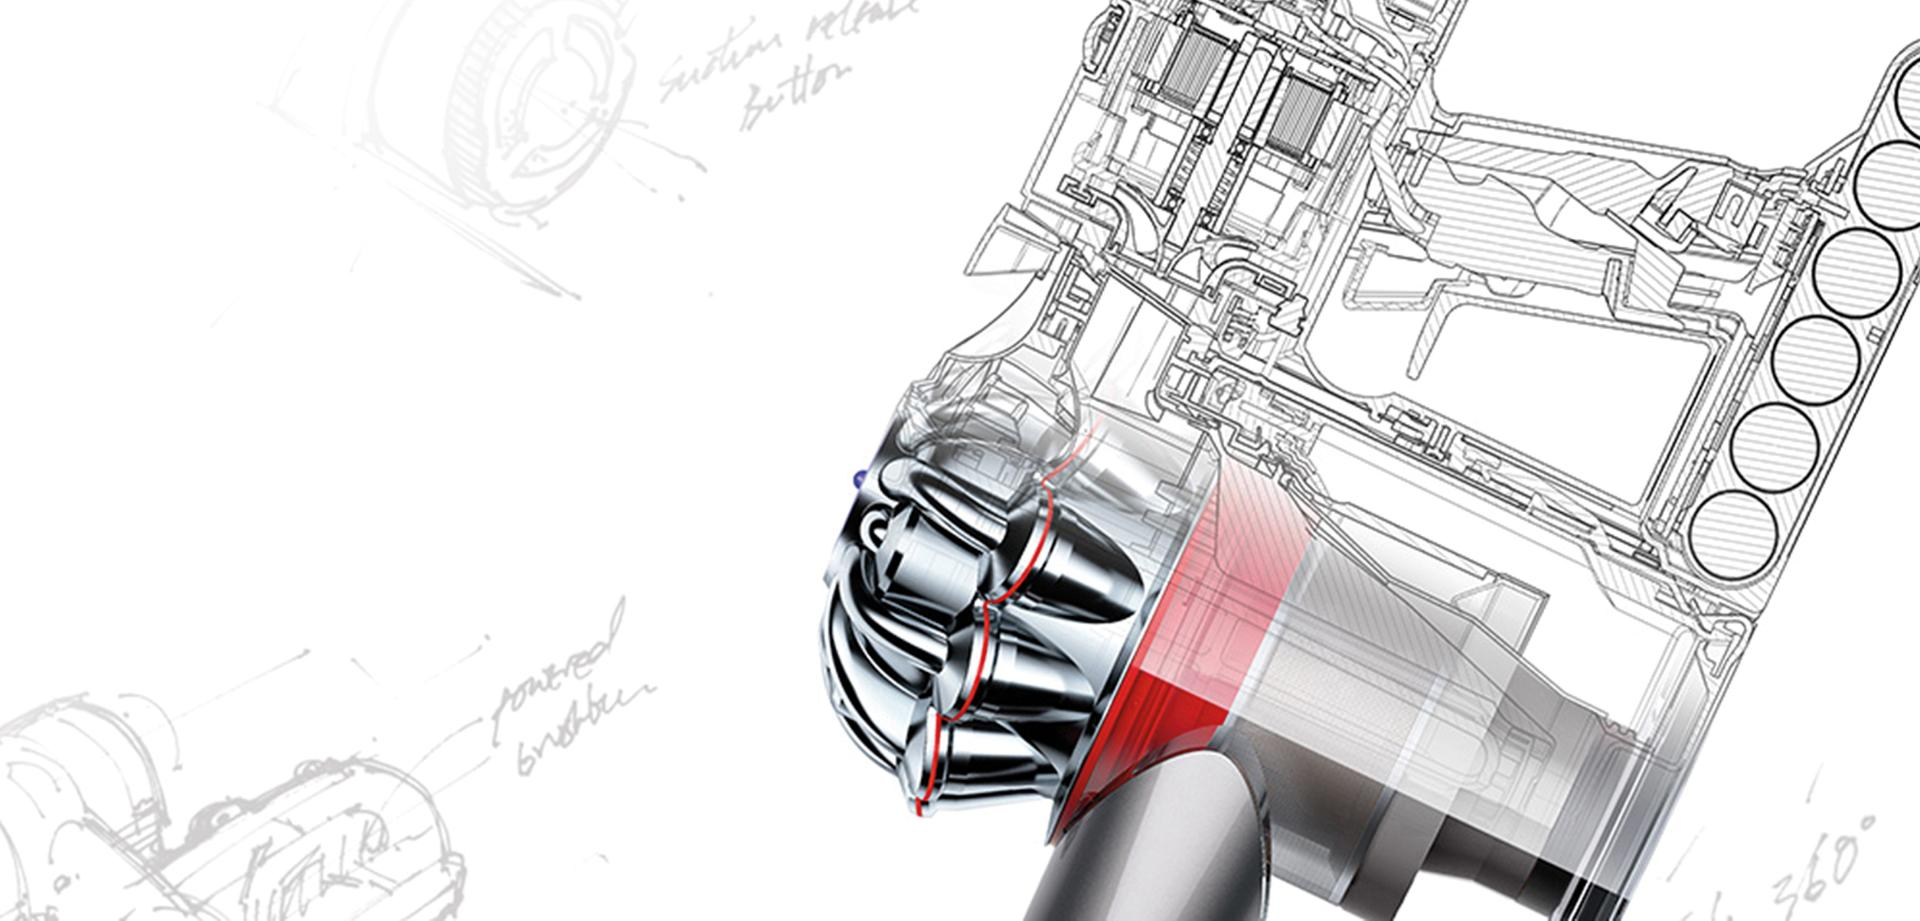 Sketch inside a Dyson stick vacuum cleaner